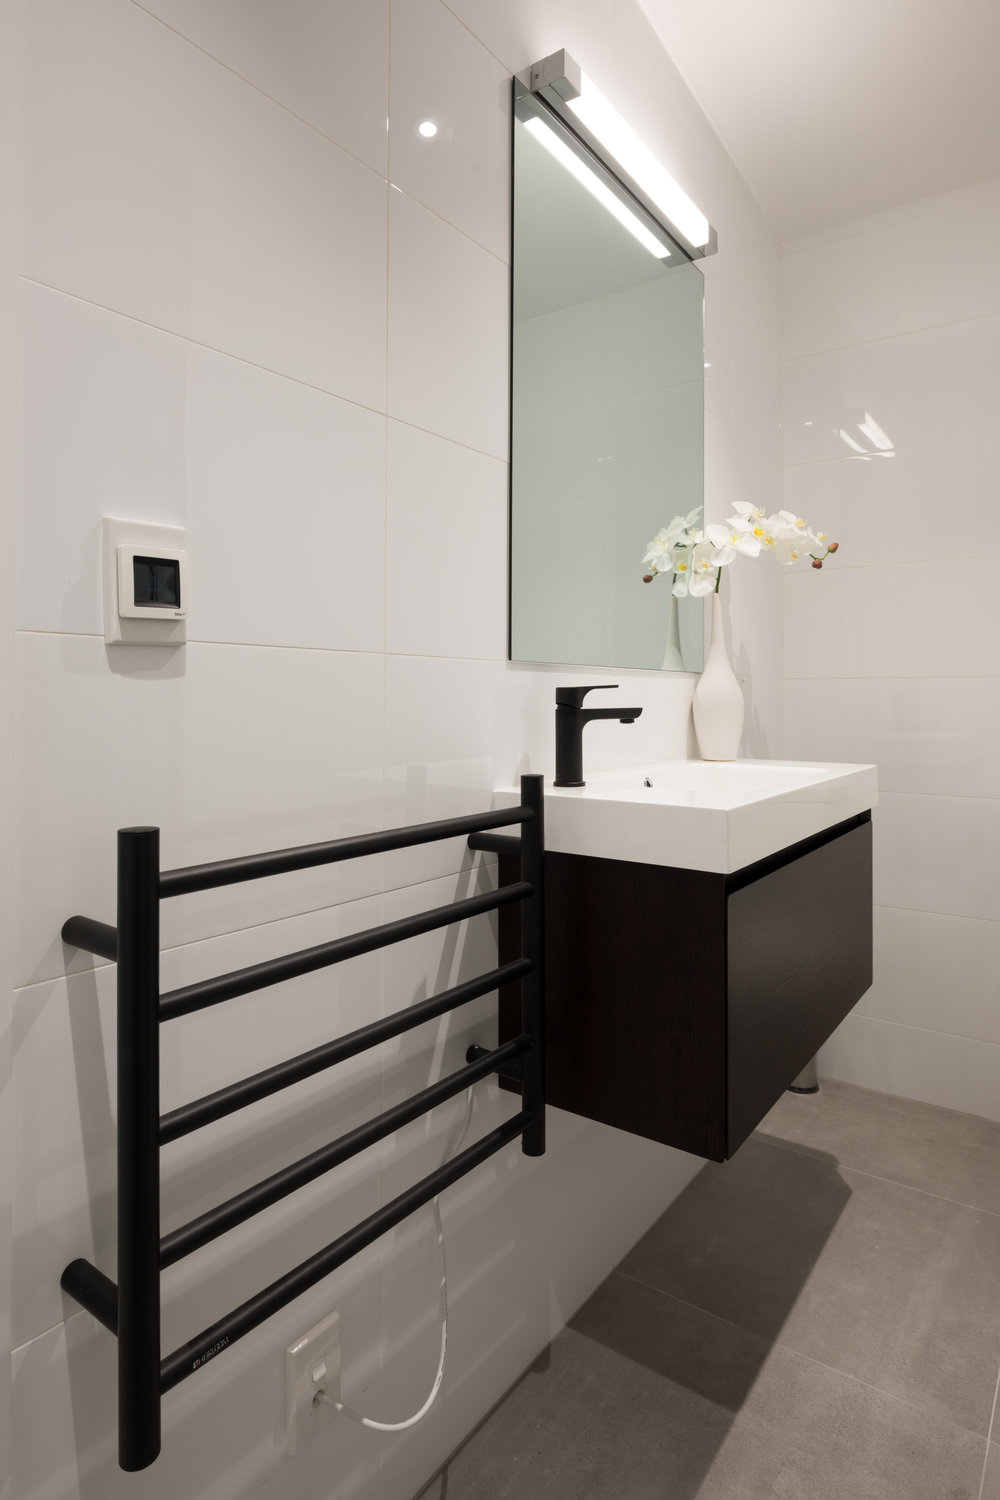 Bathroom Design 94-96 Queen Street